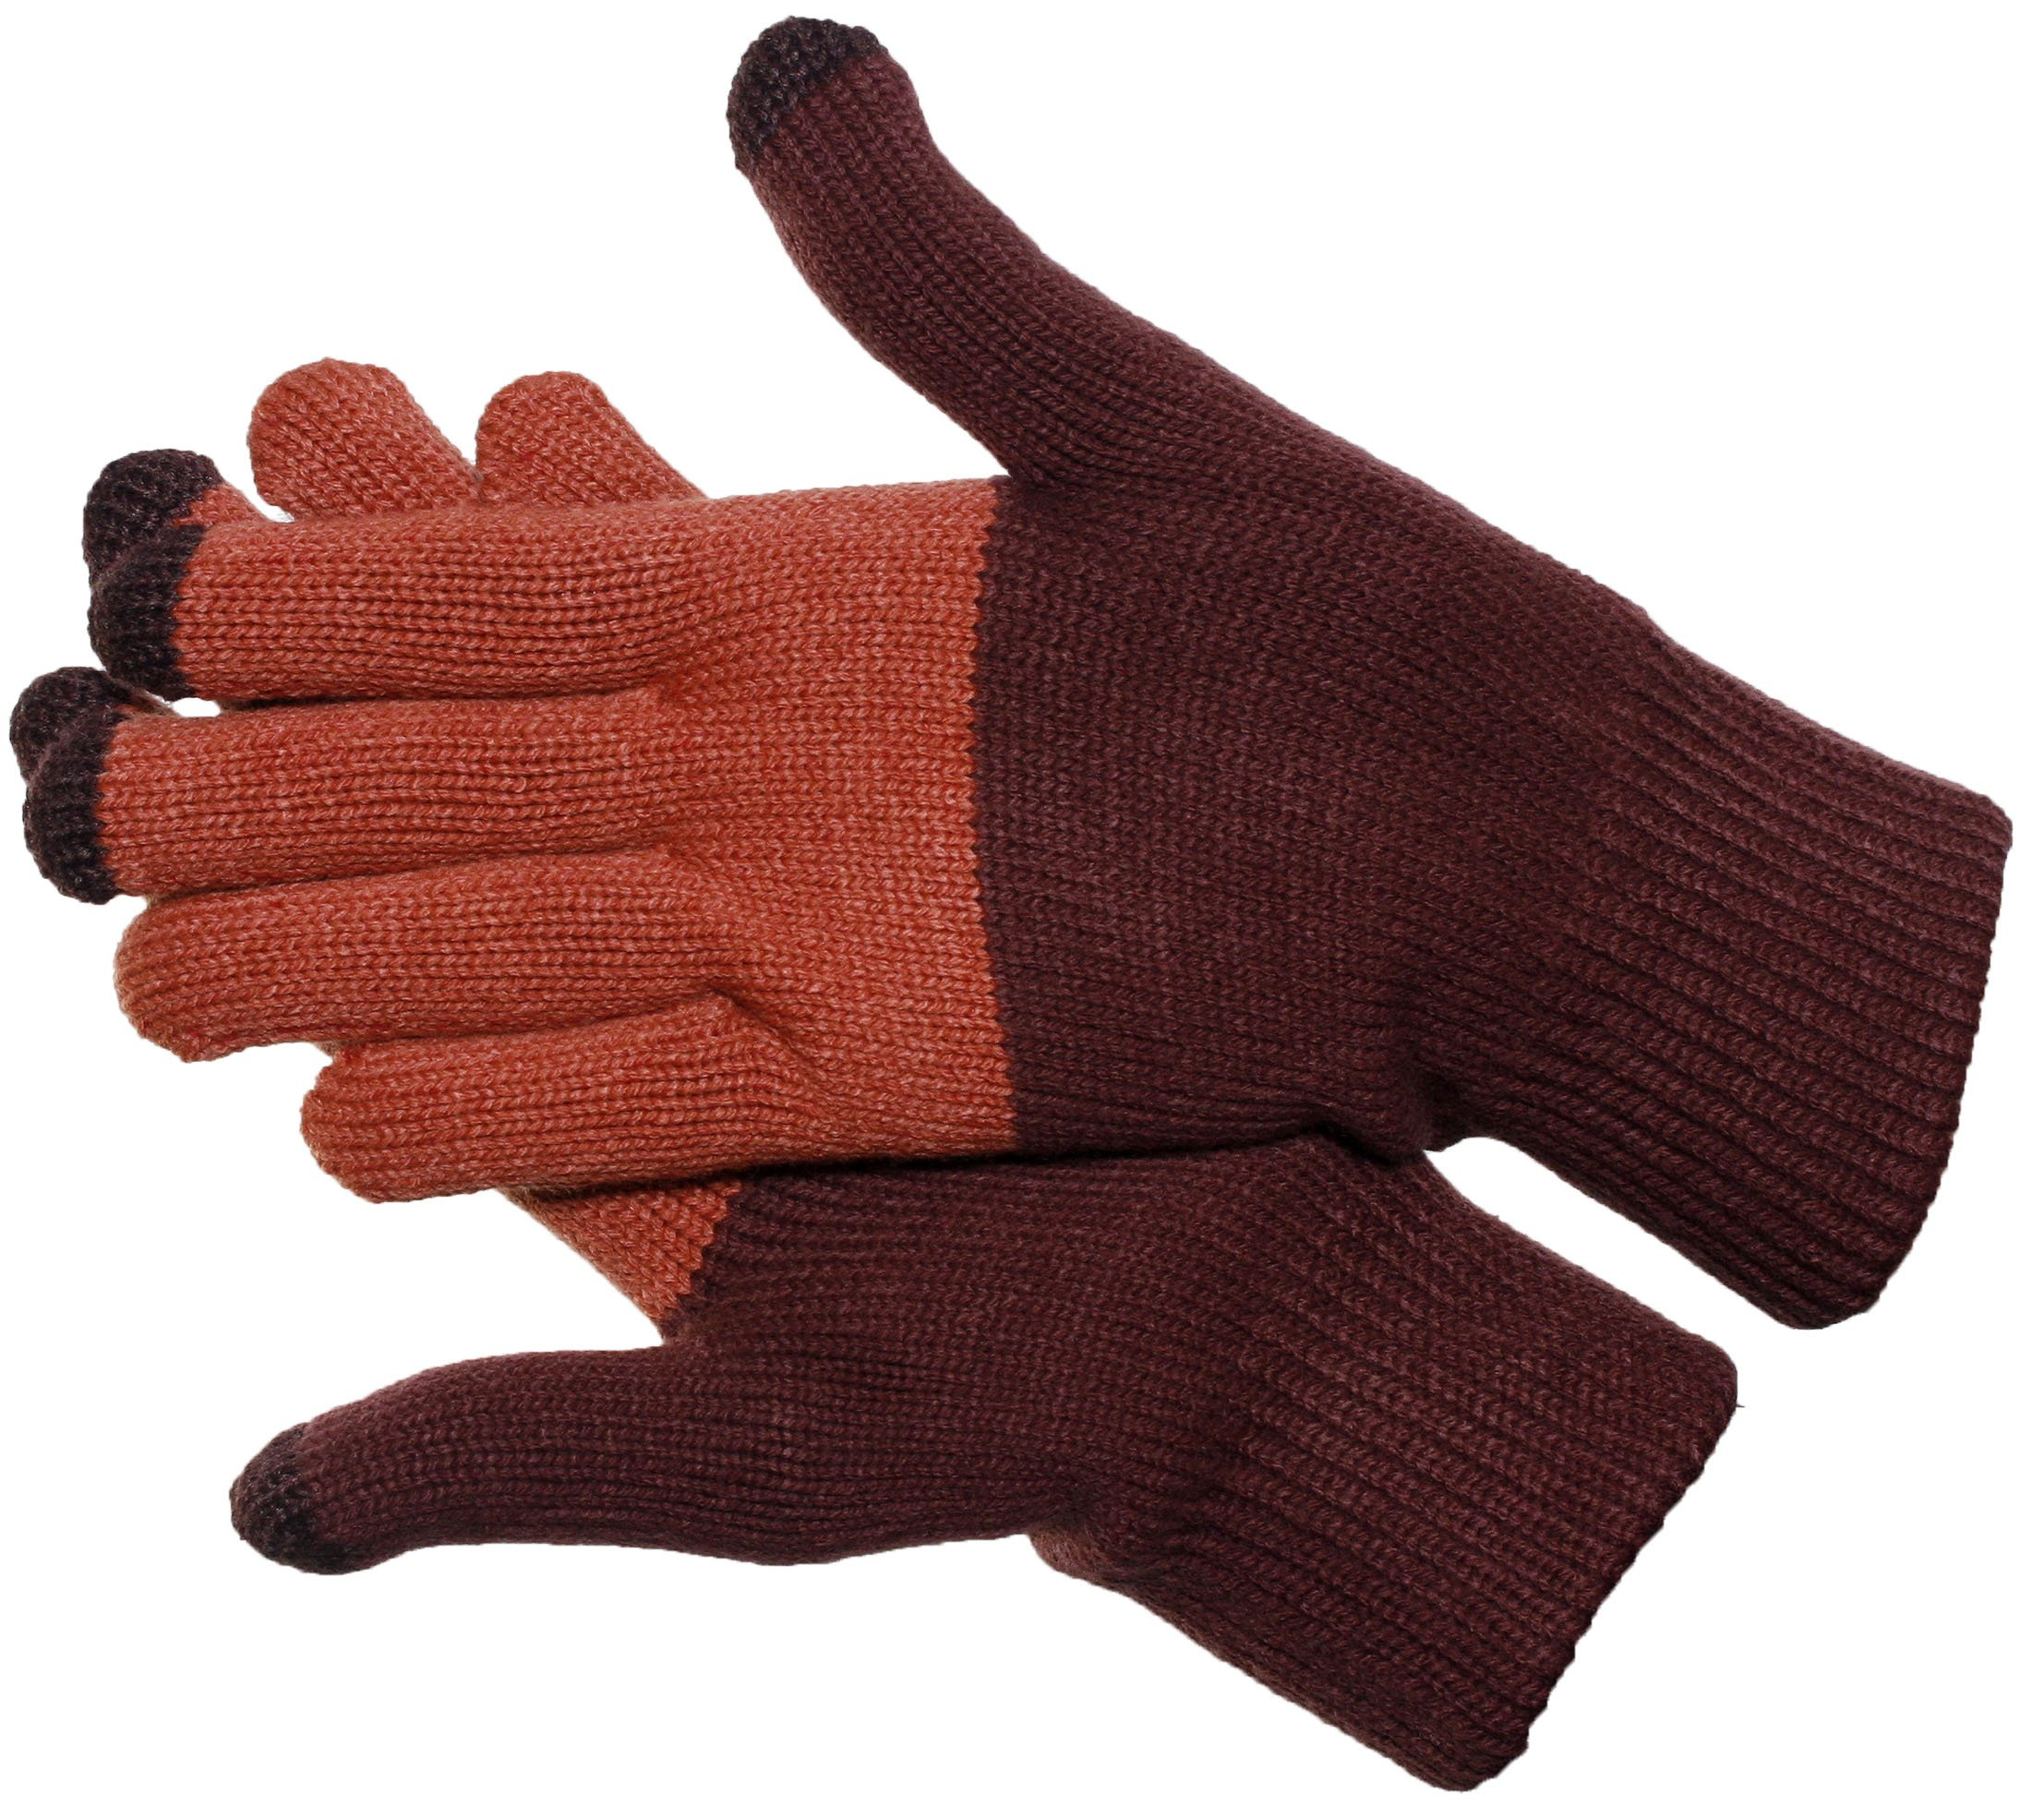 Verloop ColorBlock Touchscreen Gloves / Texting Gloves Warm Knitted (Plum)